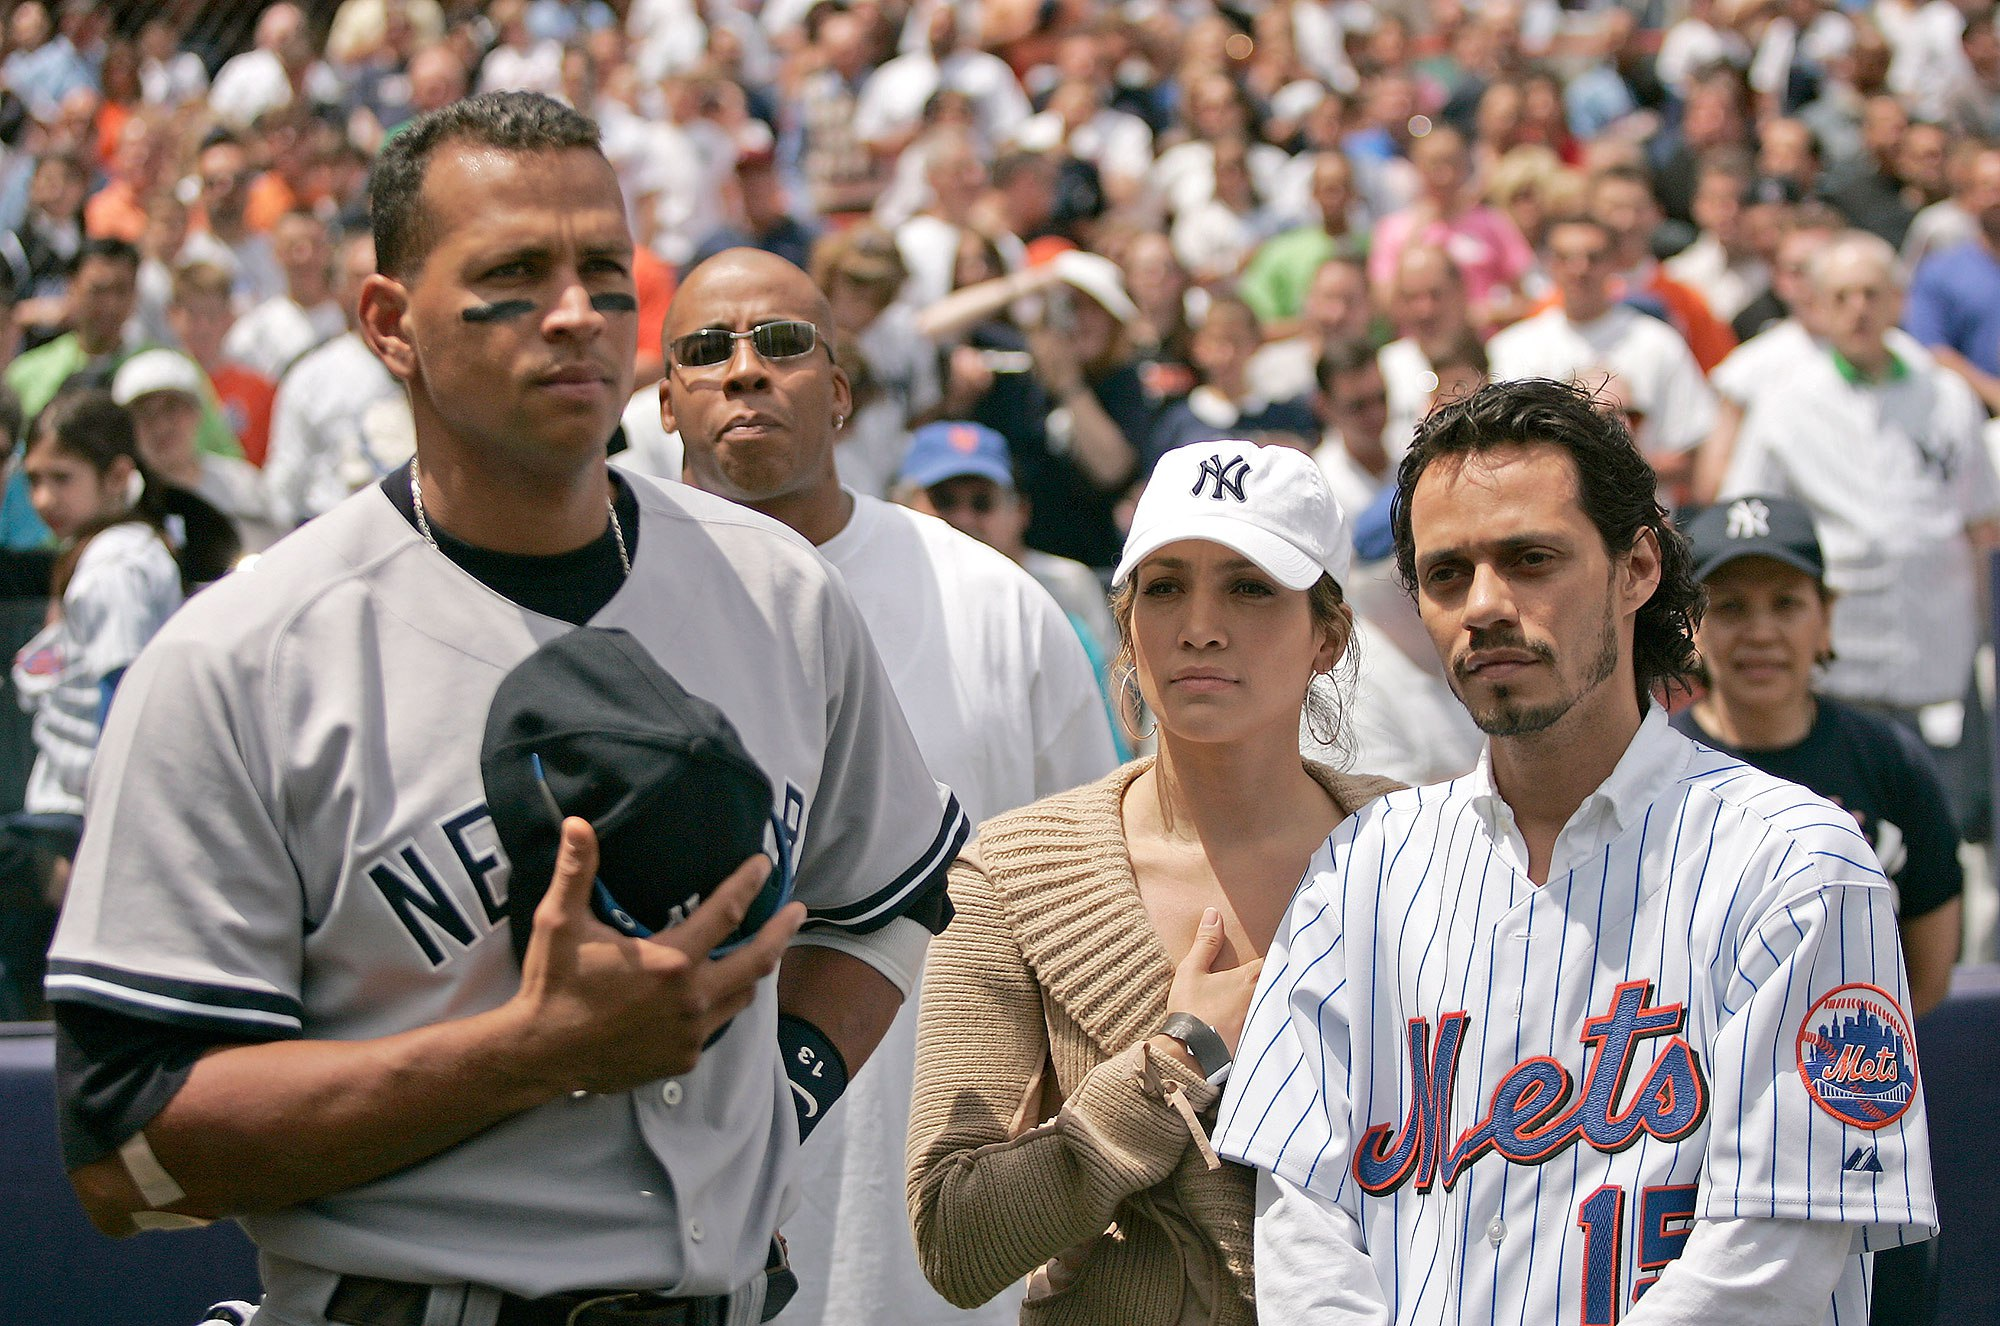 Actress Jennifer Lopez and husband Marc Anthony with New York Yankee Alex Rodriguez before a subway series game between the New York Mets and the New York Yankees at Shea Stadium in Queens, New York on Saturday May 21, 2005. The Mets beat the Yankees 7-1. (Photo by Mike Ehrmann/WireImage)